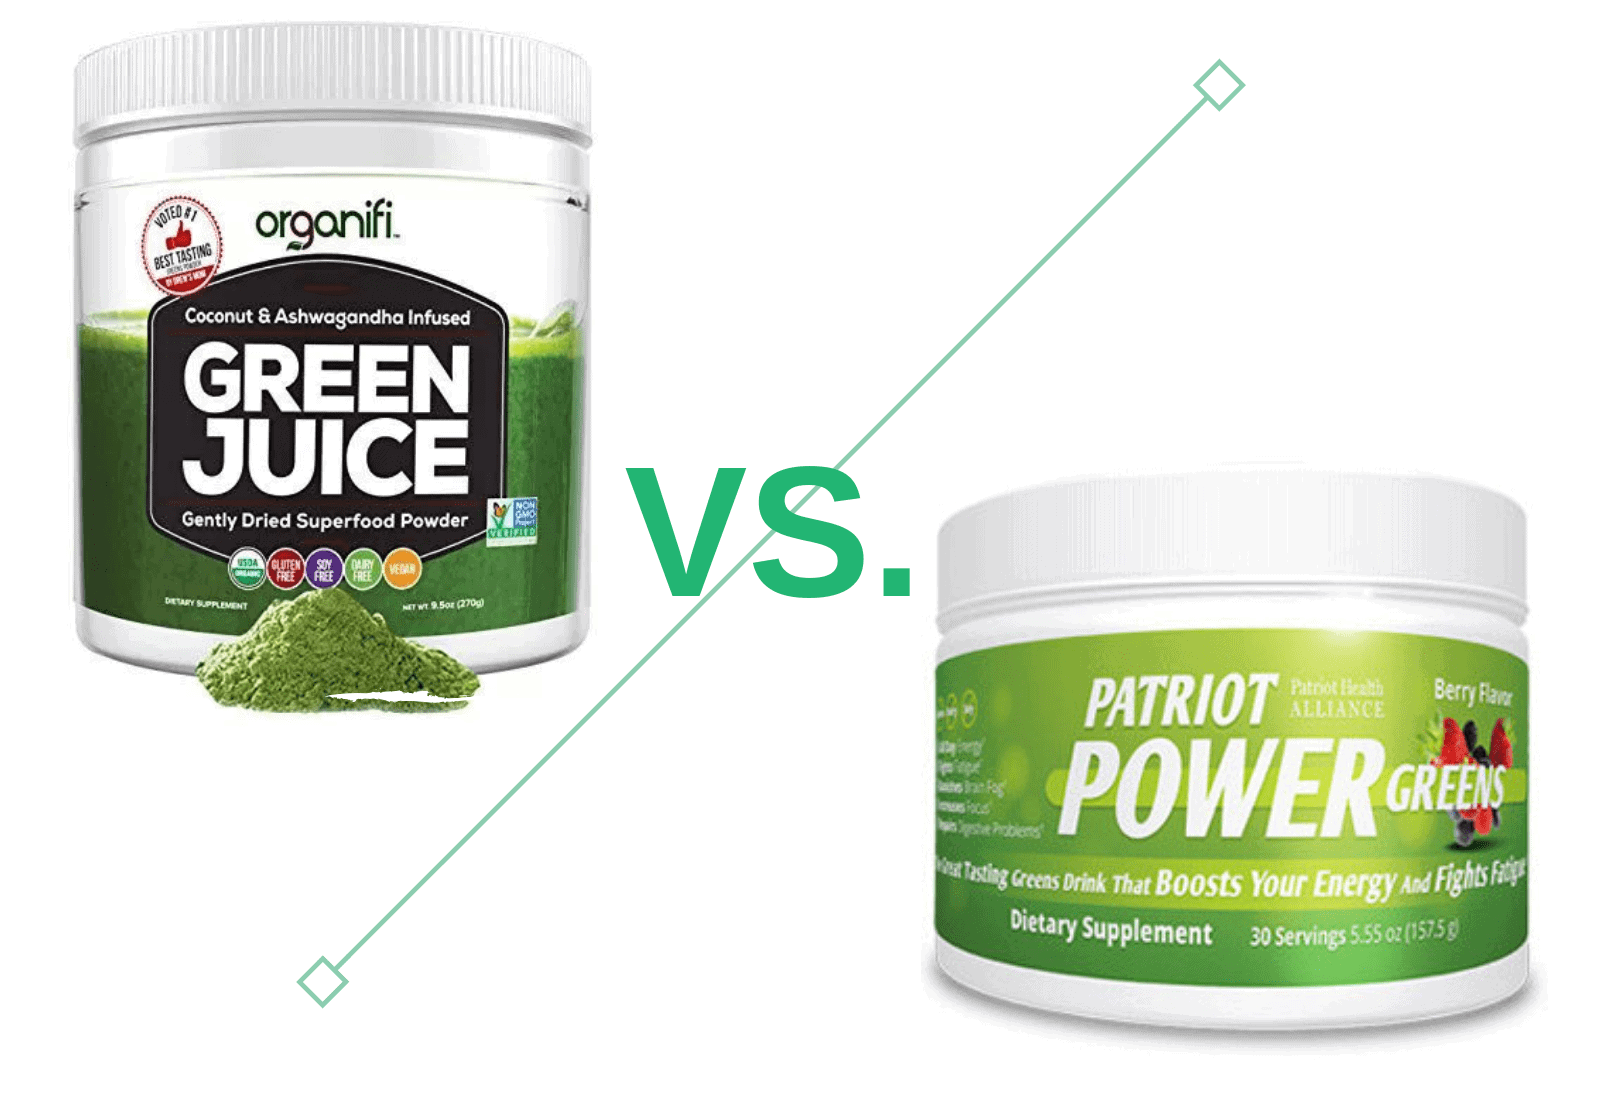 organifi green juice vs patriot power green-min